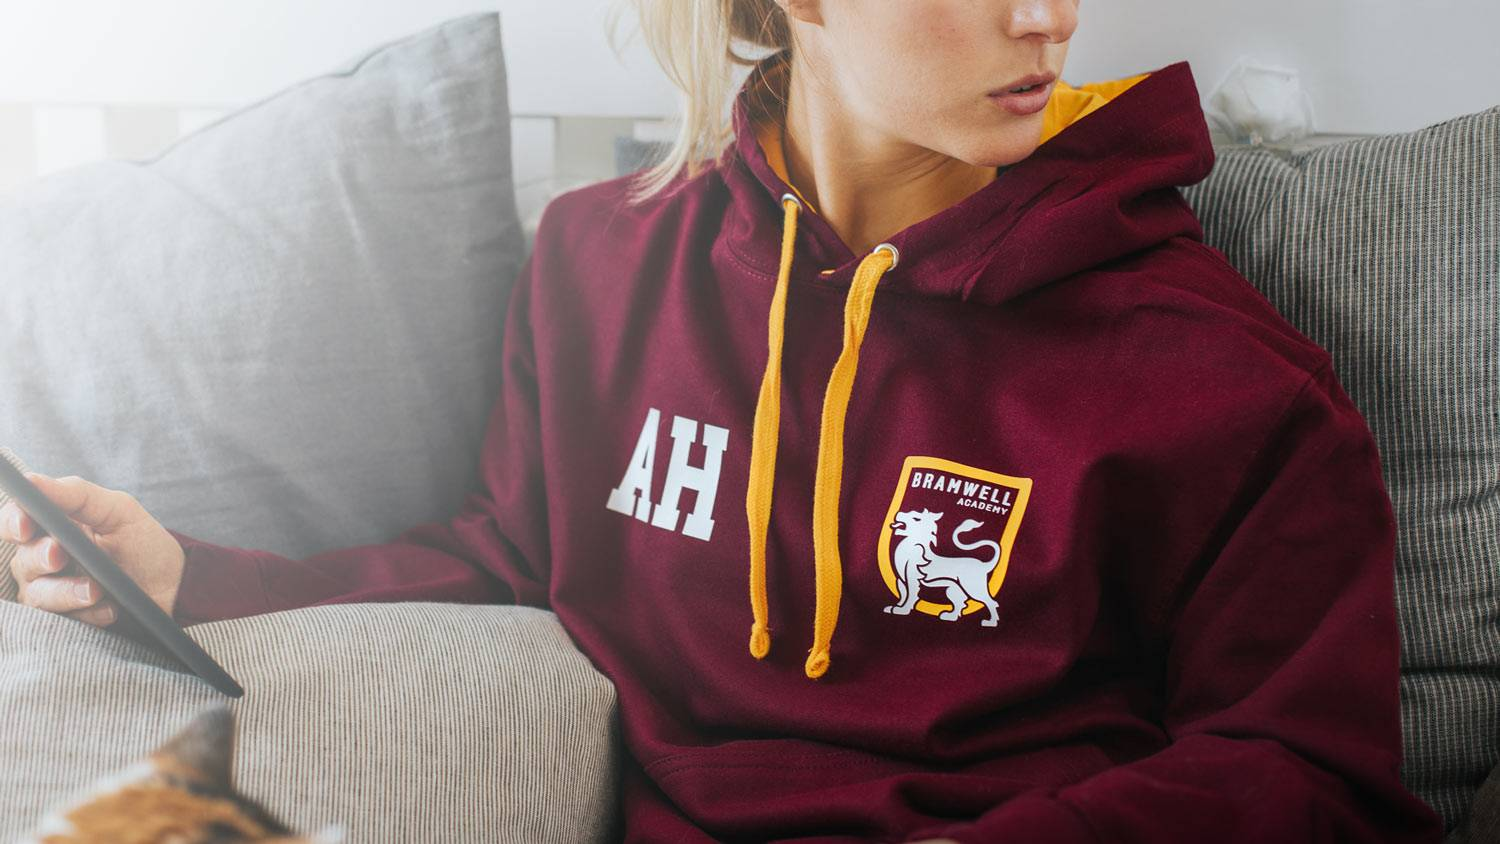 A girl sat in a burgundy leavers hoodie reading a Kindle